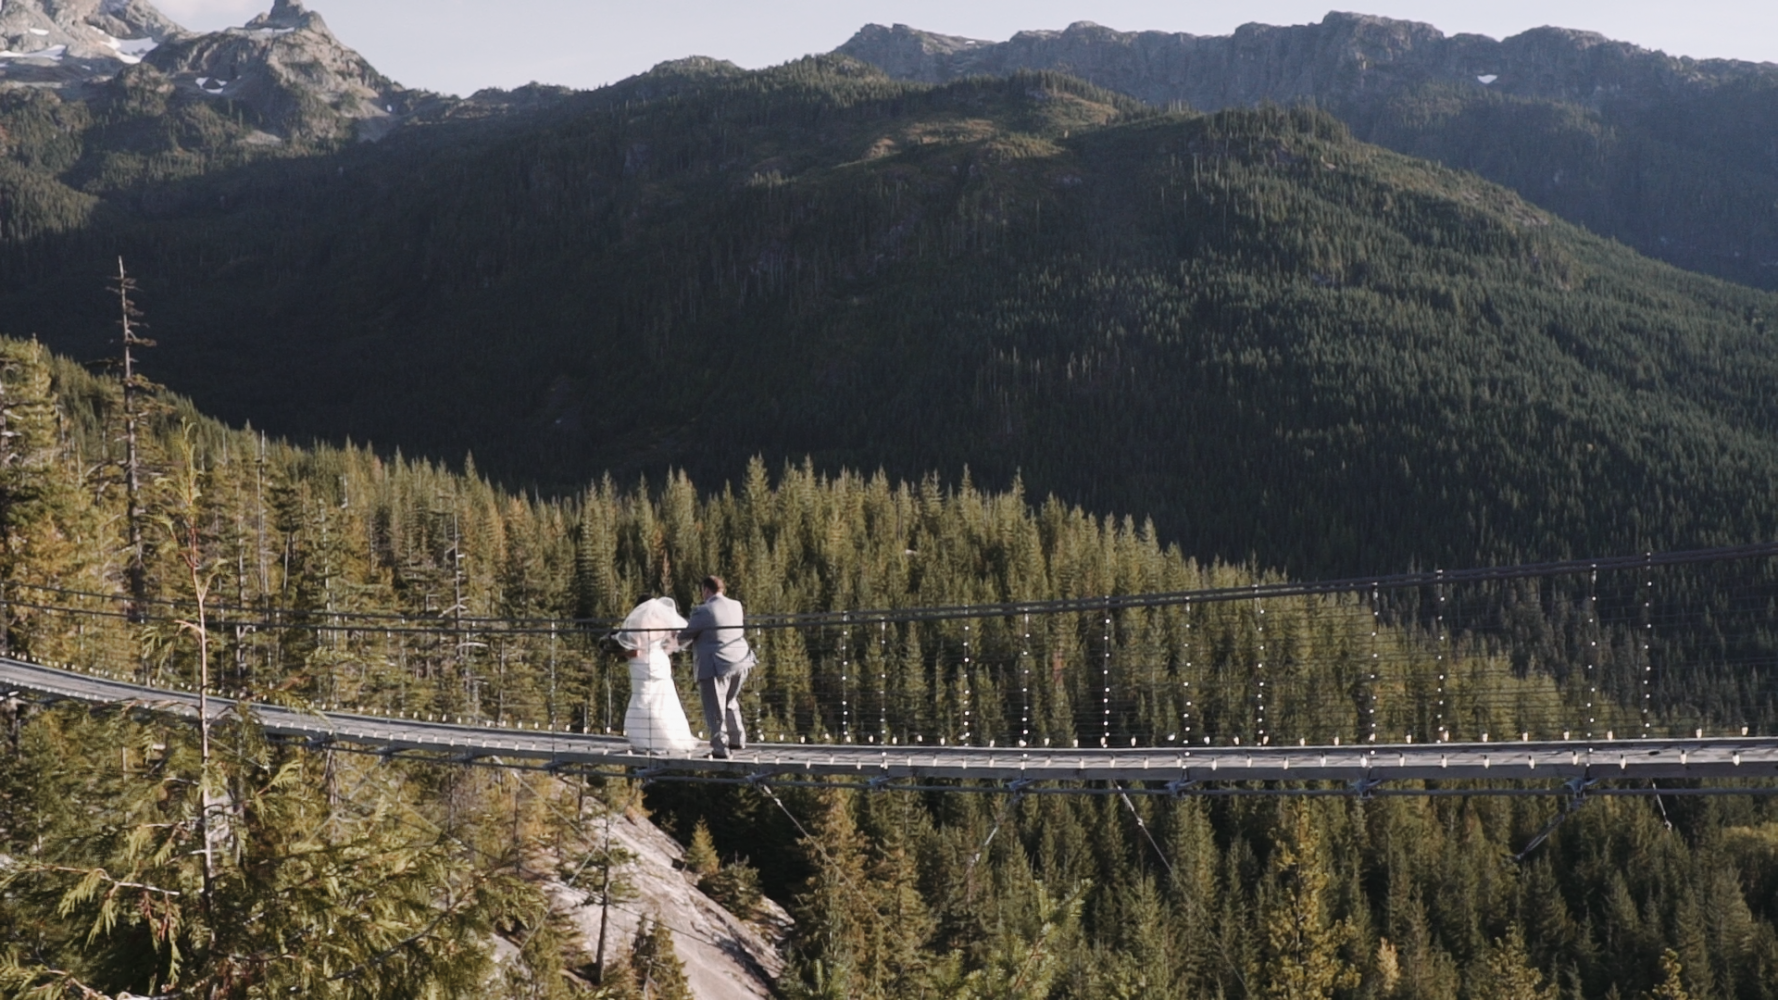 Nancy + Brian | Squamish, Canada | Sea to Sky Gondola